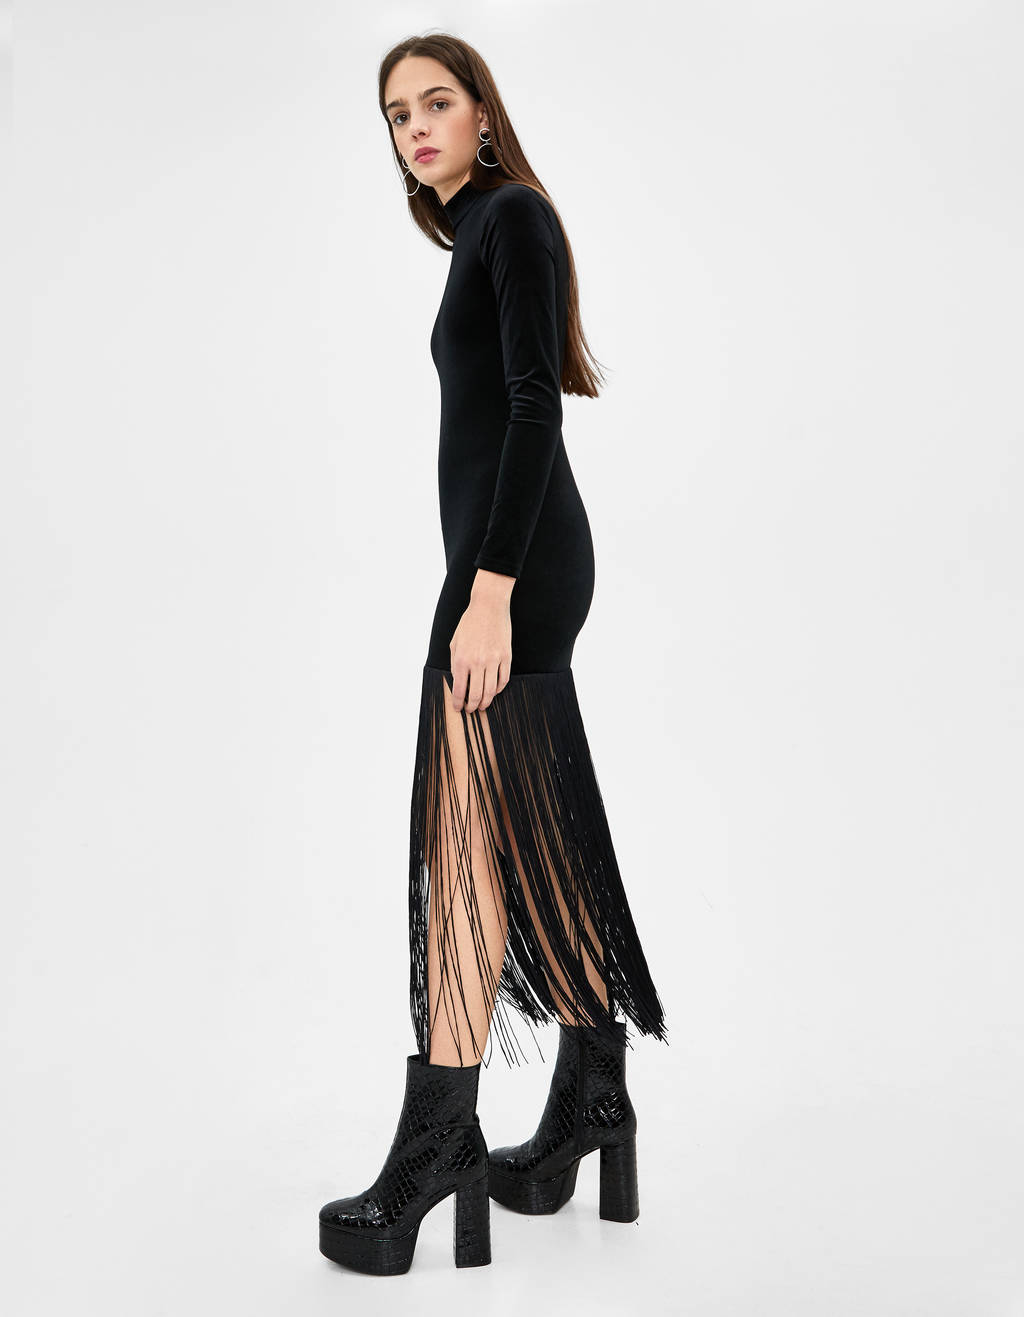 Fringed long dress